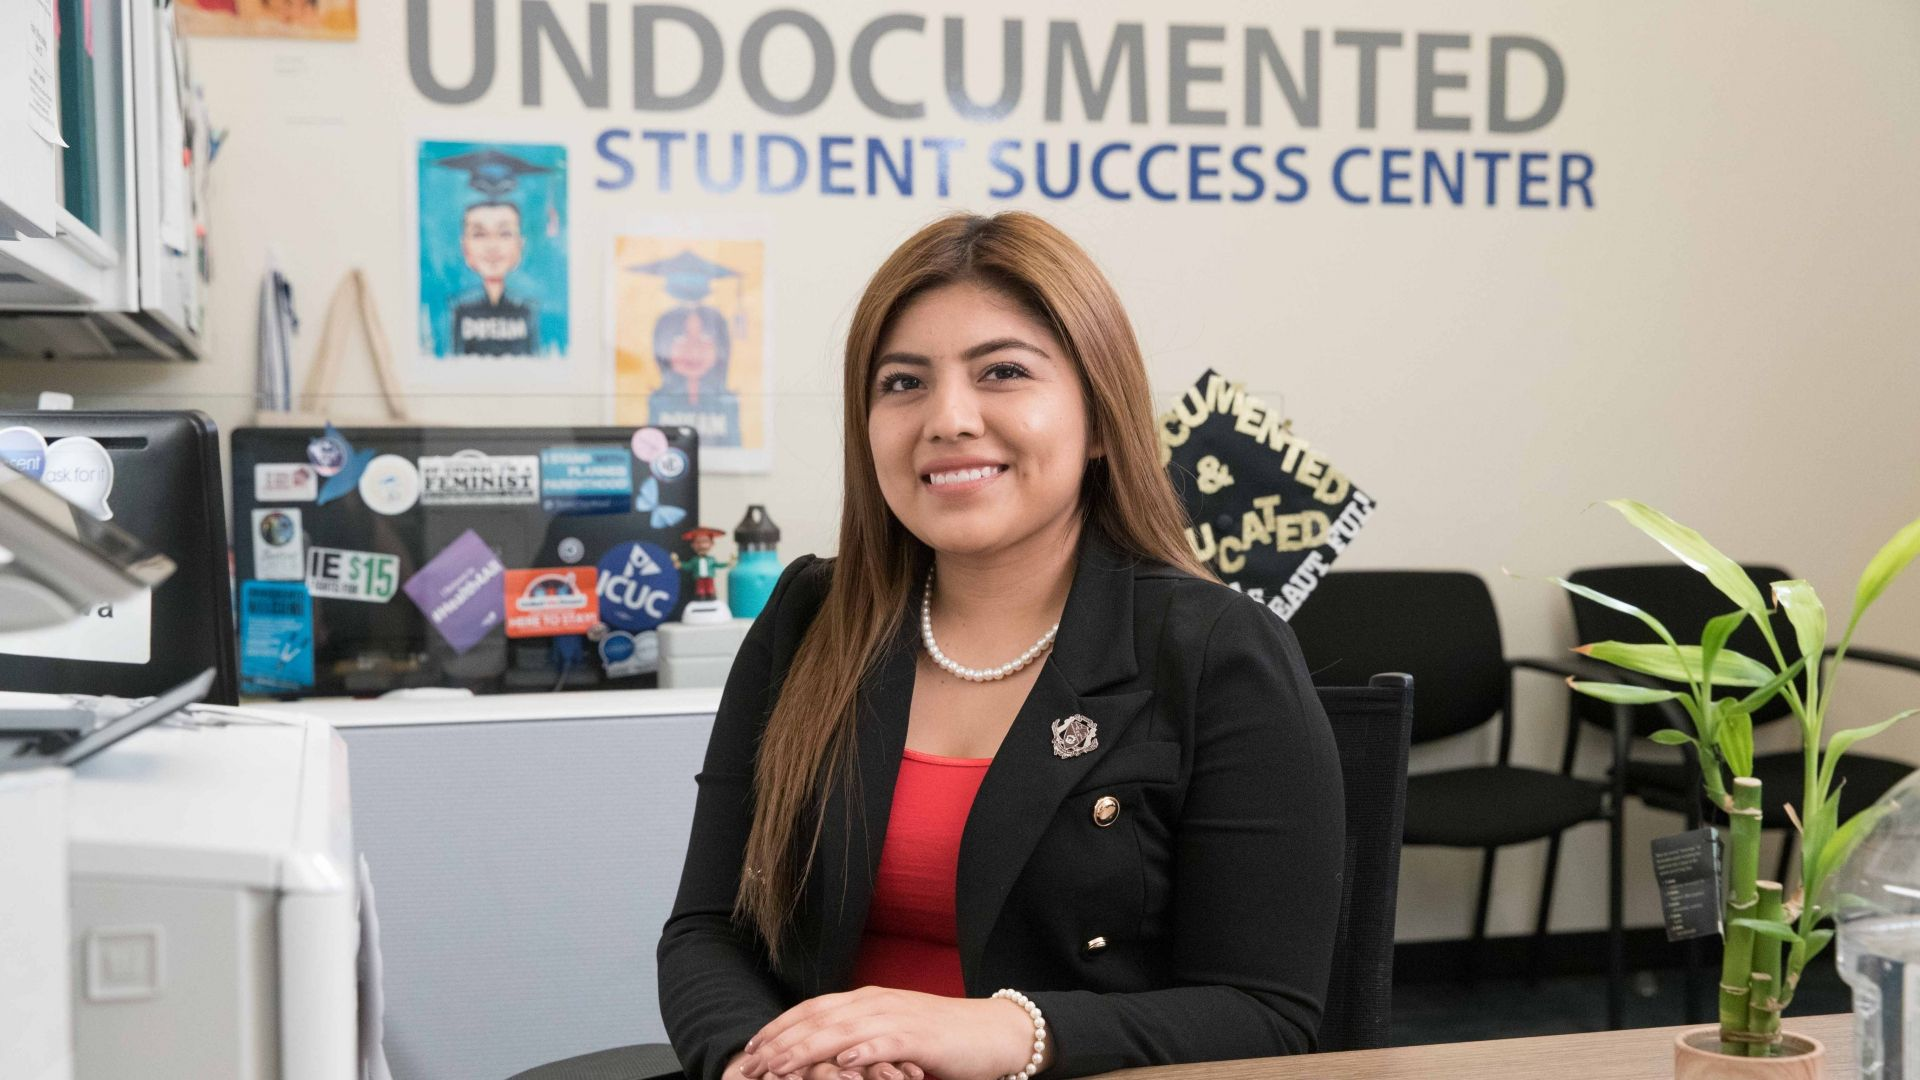 CSUSB has received a $120,000 grant from the California Campus Catalyst Fund to support the implementation and enhancement of programming and services for undocumented students and their families.